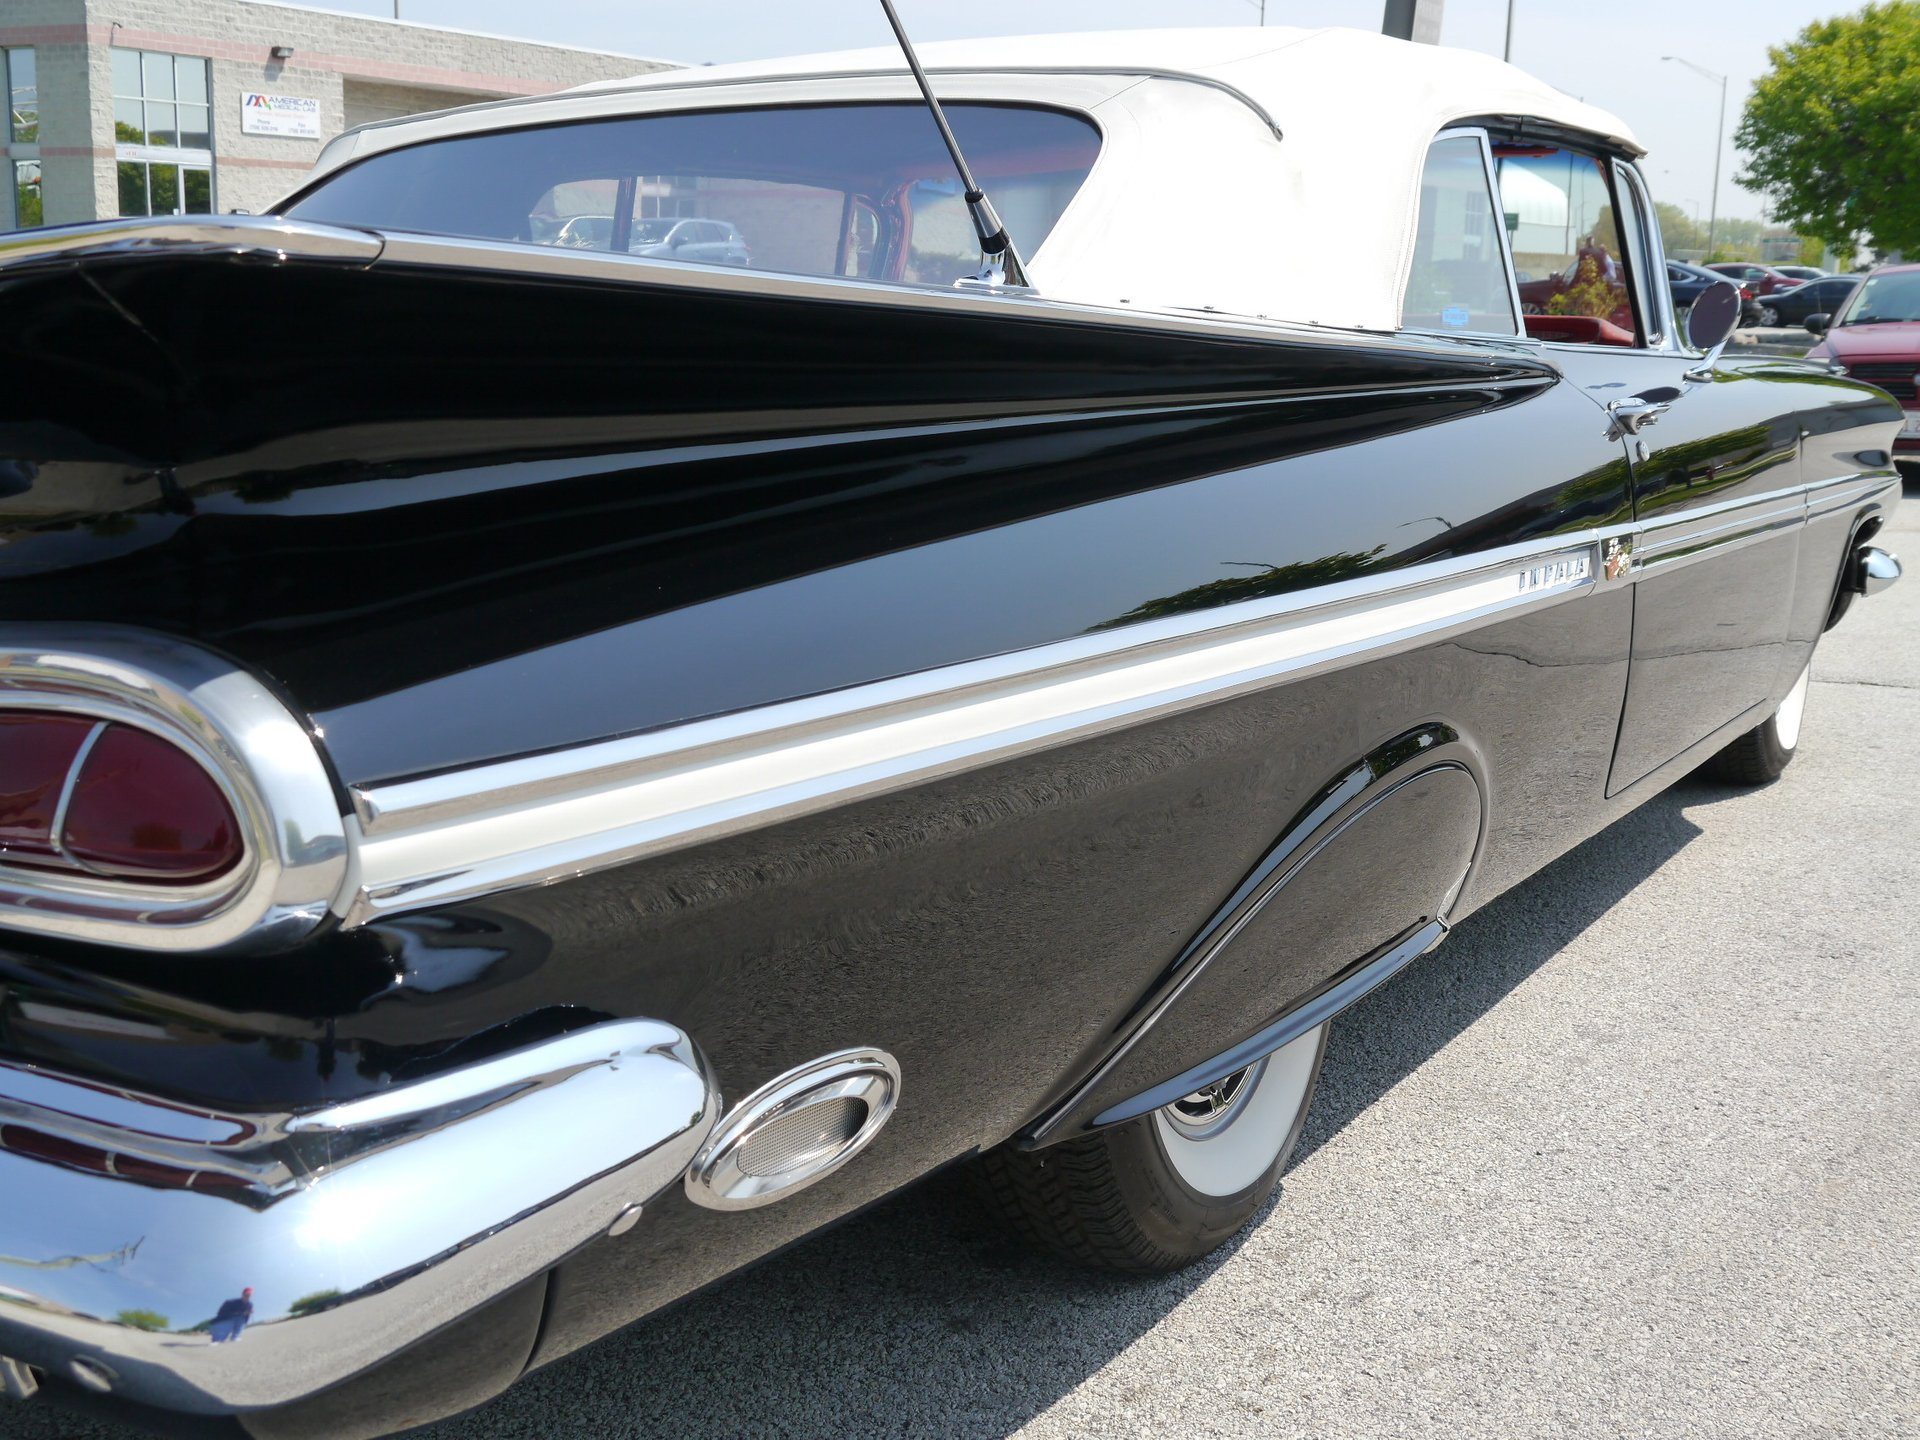 1959 Chevrolet Impala Convertible for sale #50656 | MCG